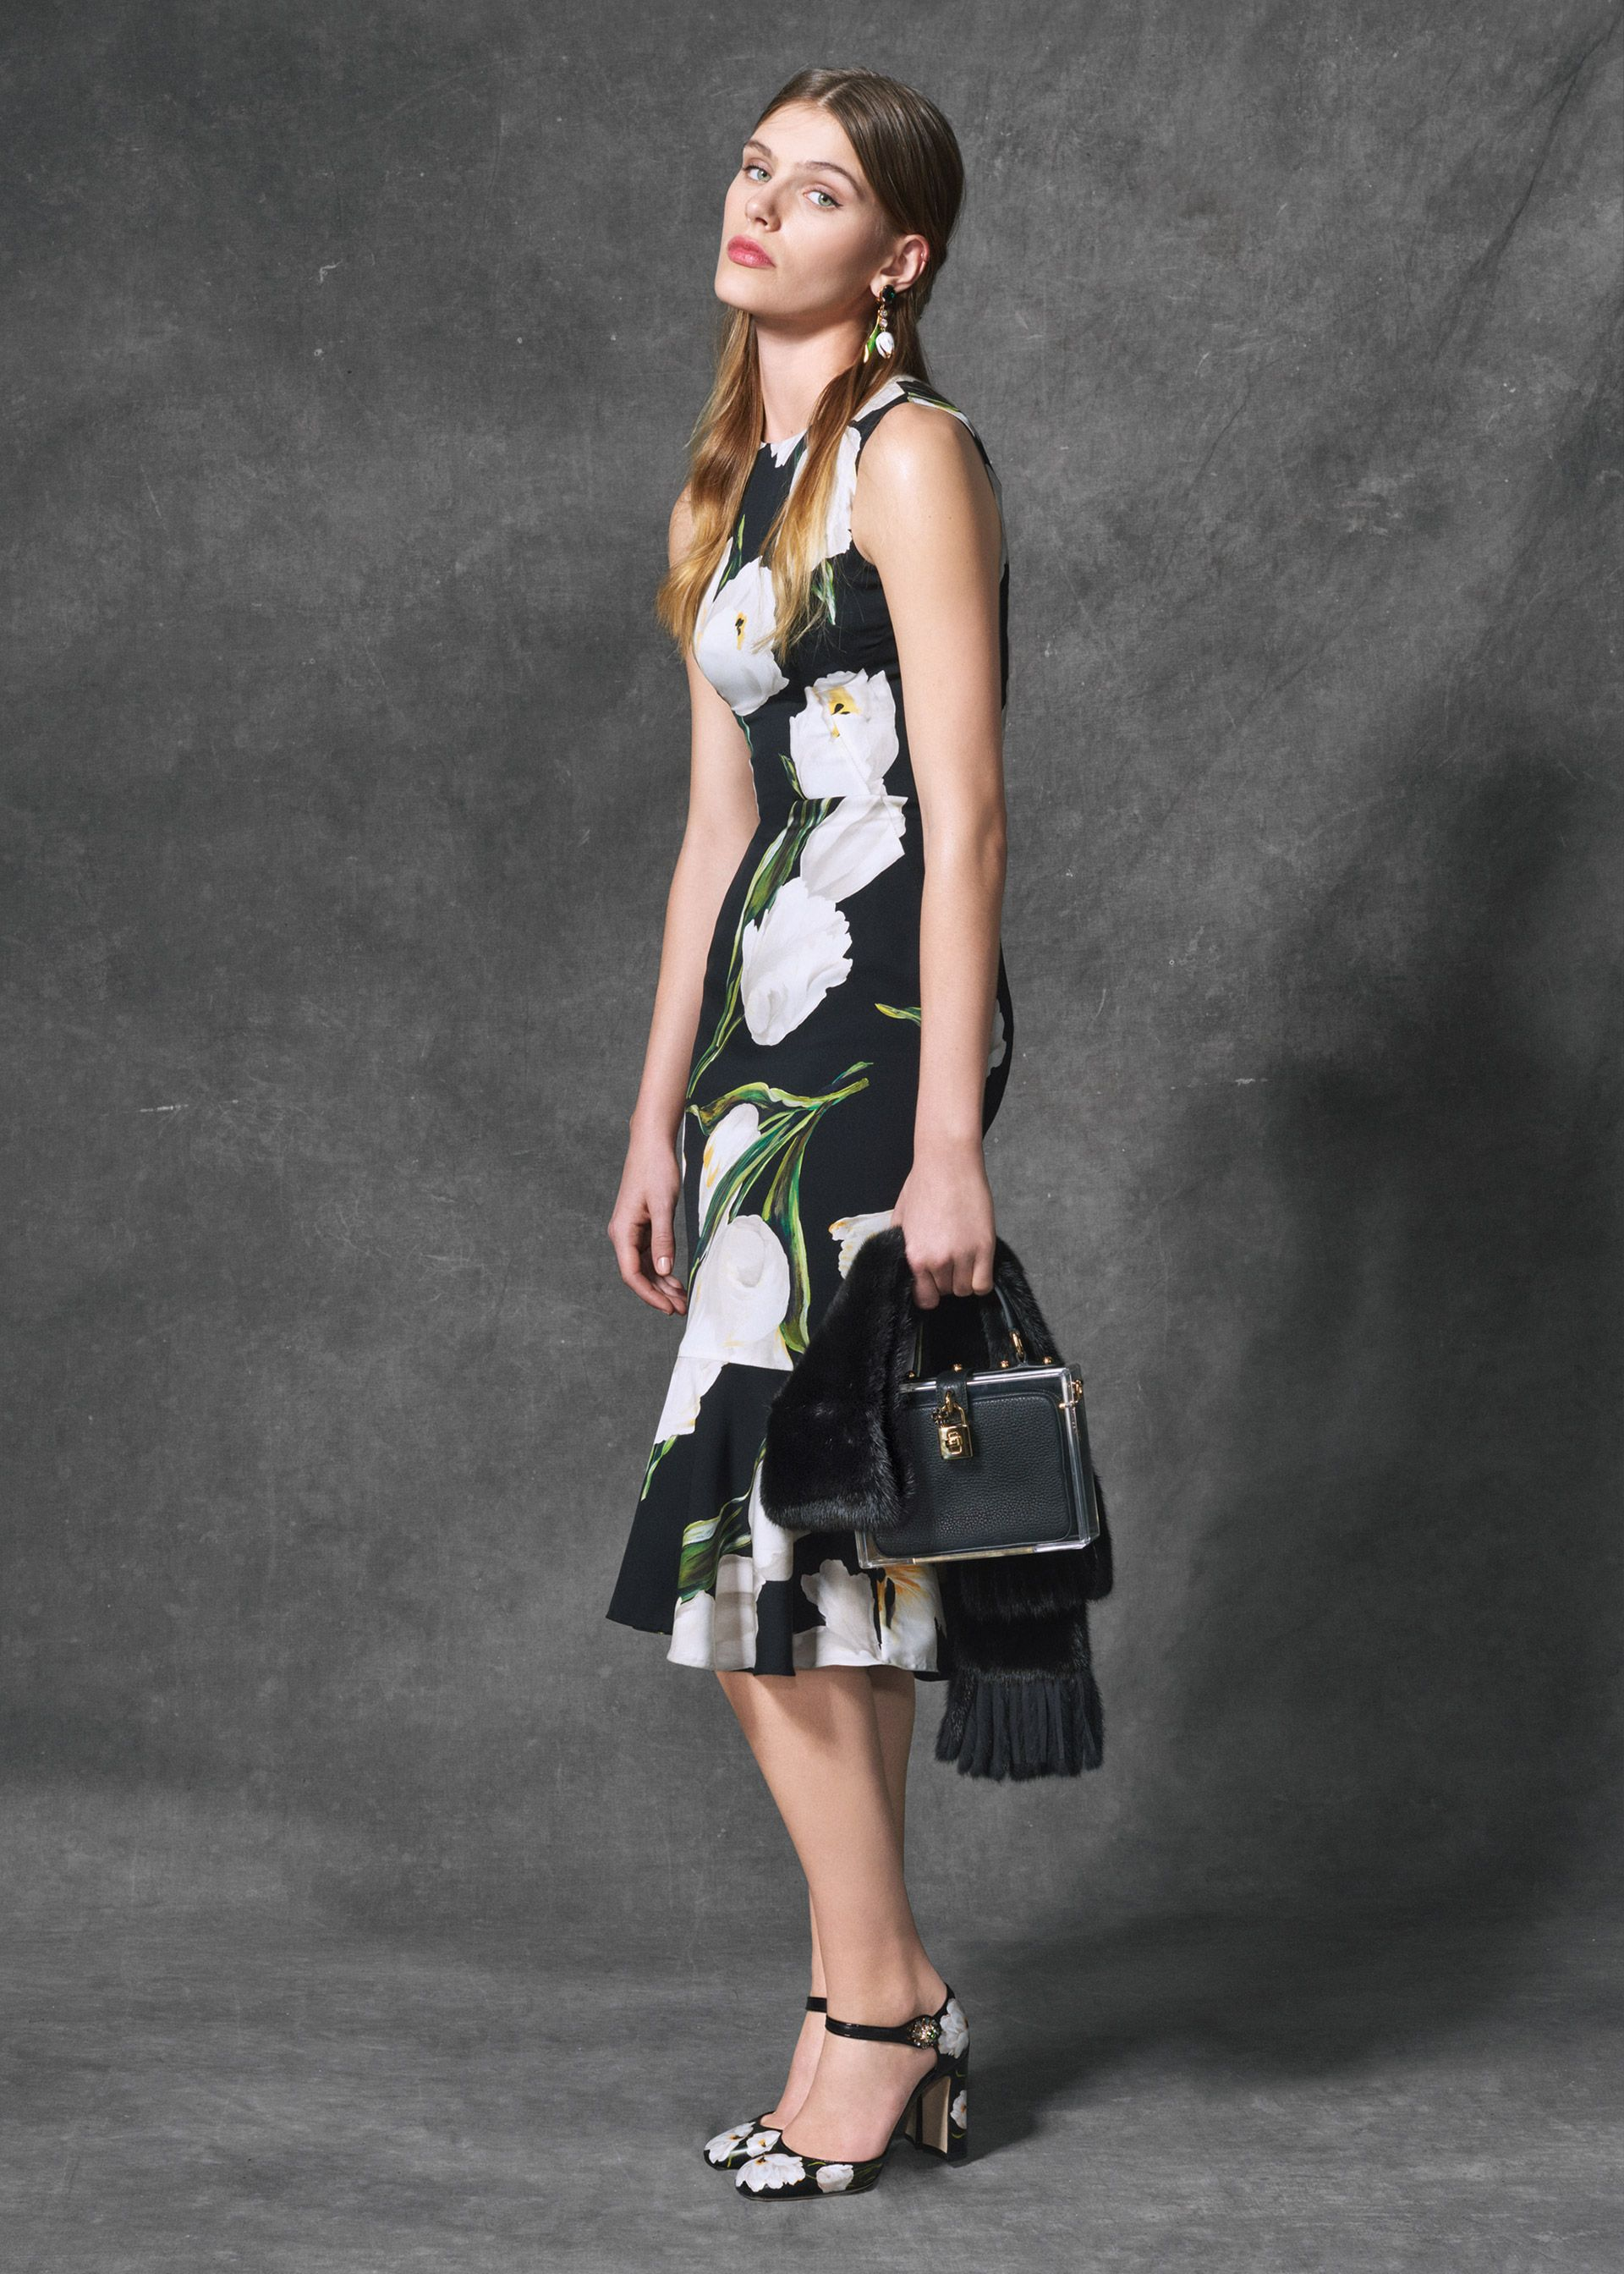 2d305ba1a3d Discover the new Dolce   Gabbana Women s Tulips Print Collection for Fall  Winter 2016 2017 and